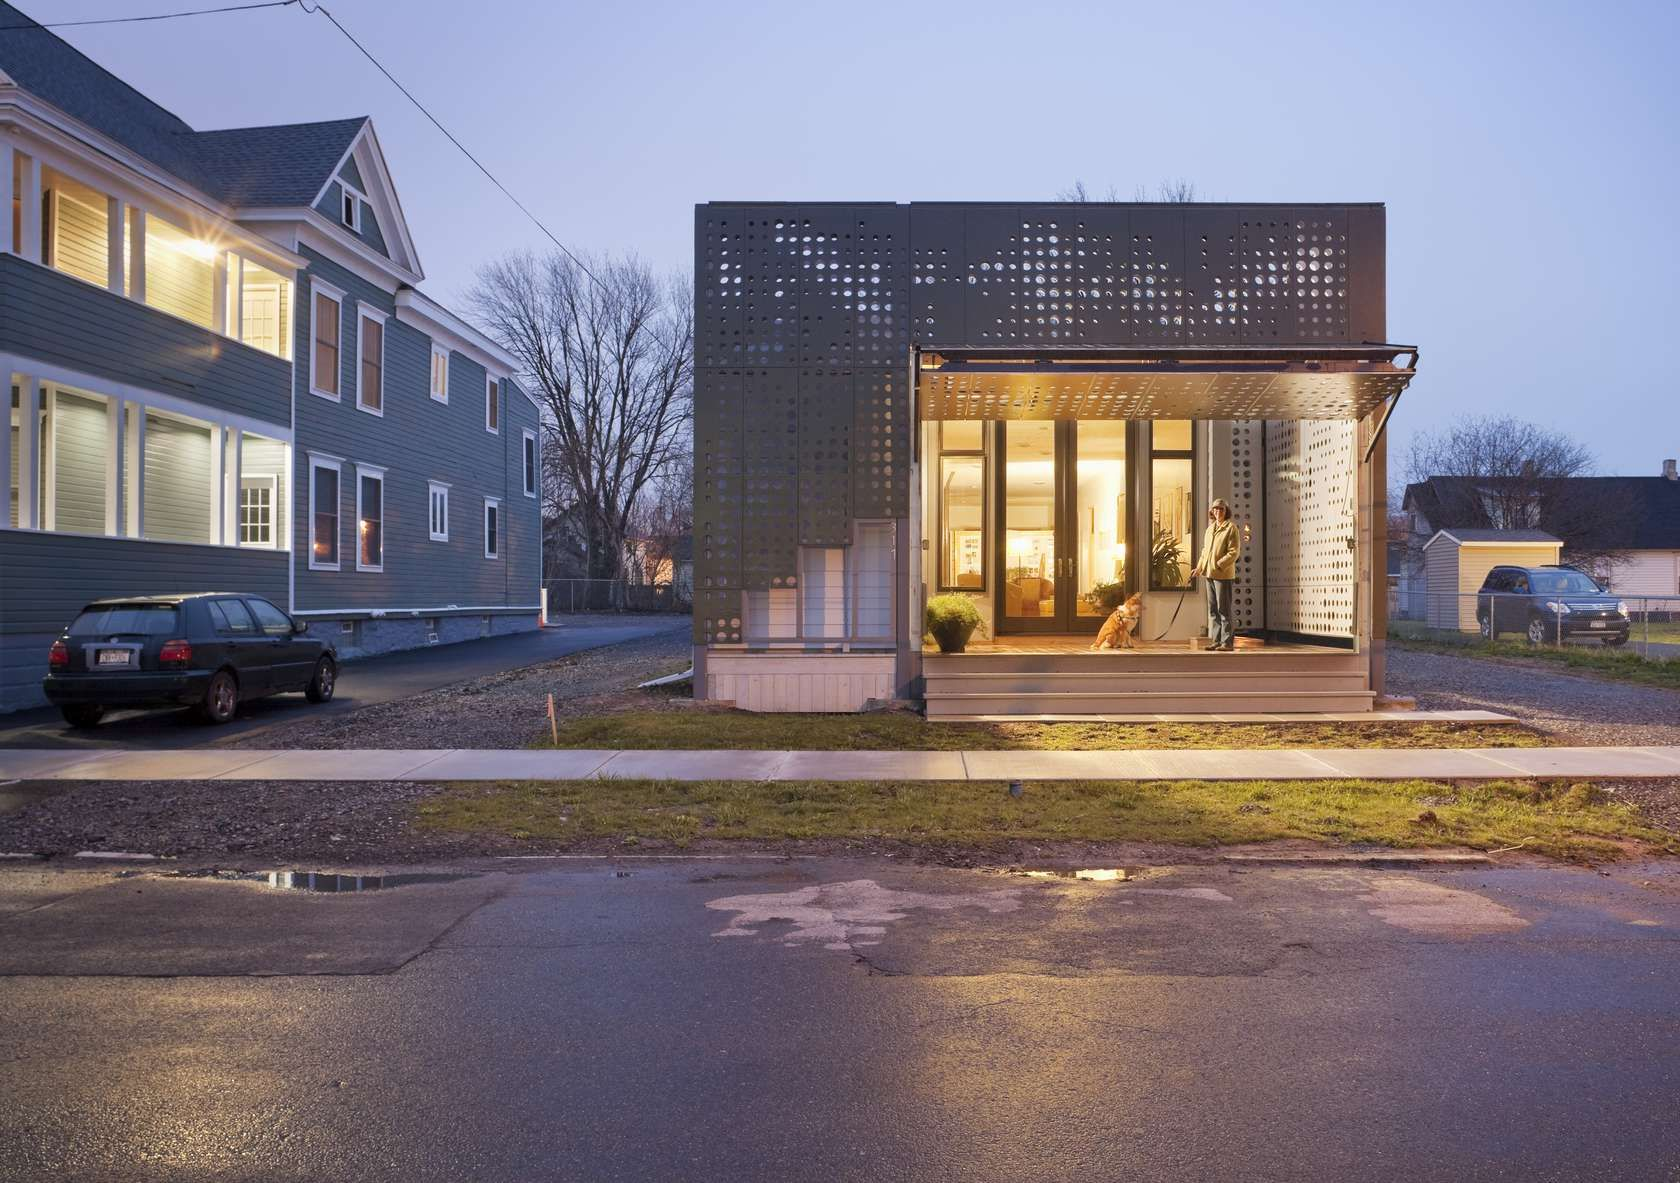 The live work home is a sustainable social response to syracuses 21st century concerns as a post industrial american city inspired by the legend of the